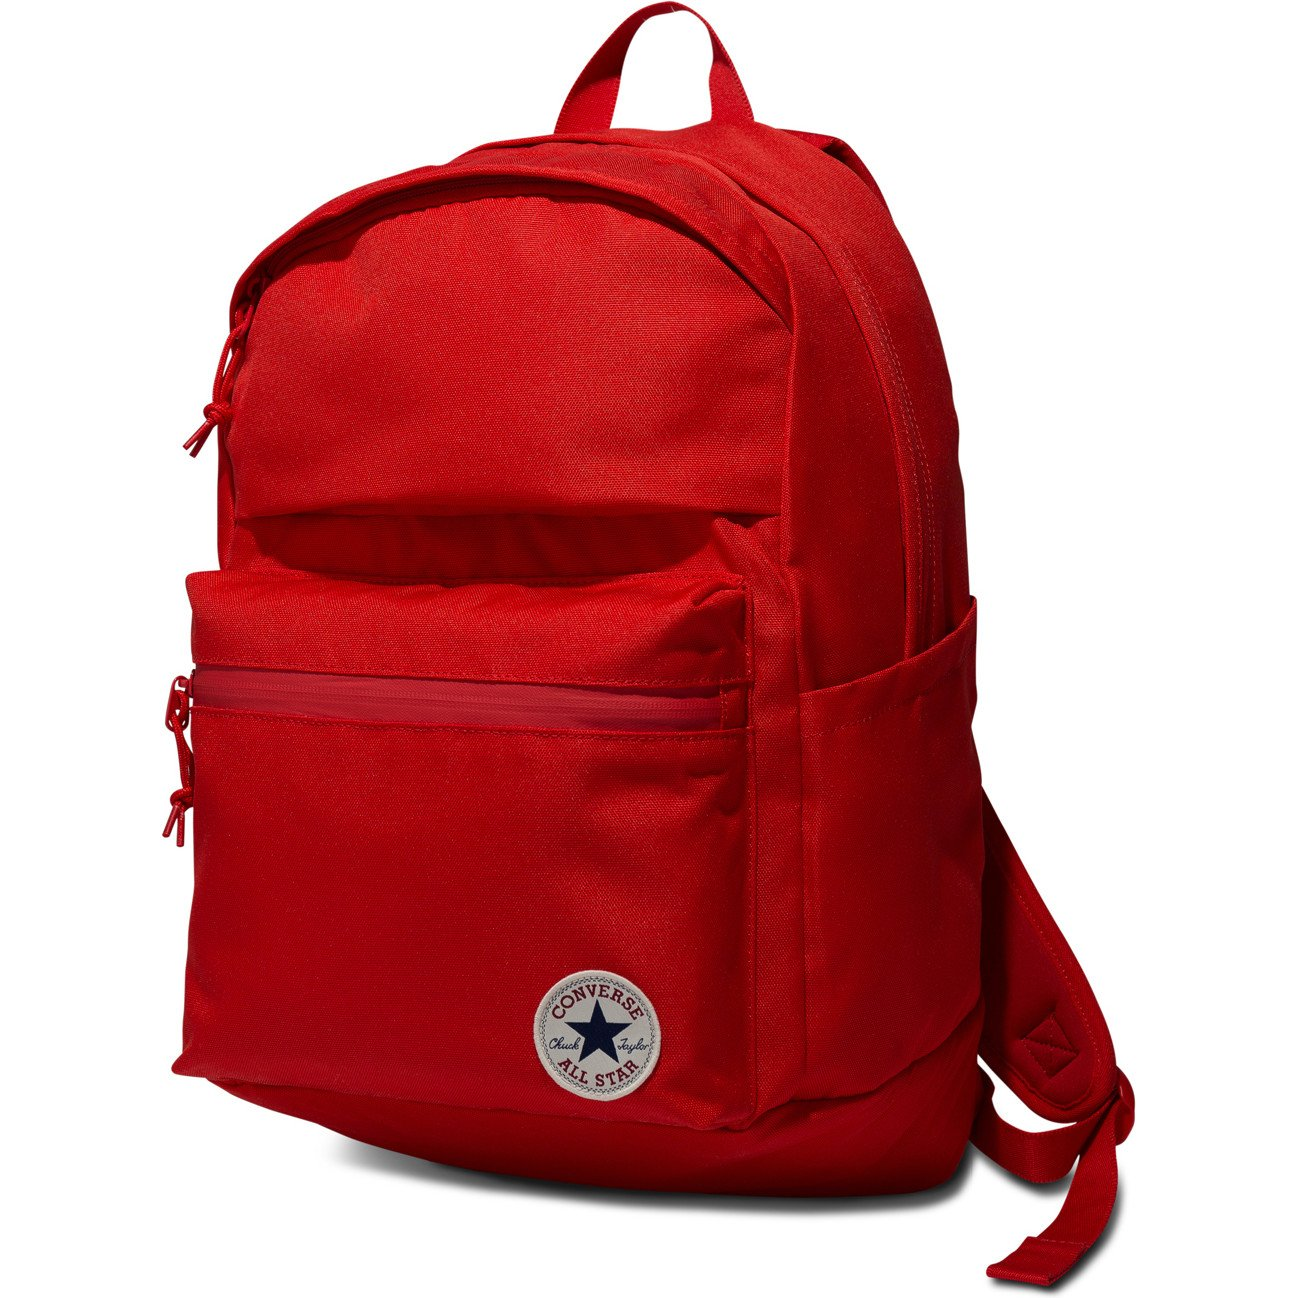 ff8c6eb40cac7a Galleon - Converse Mens Chuck Plus 1.0 Poly Laptop Backpack 10003335-A03 -  Red